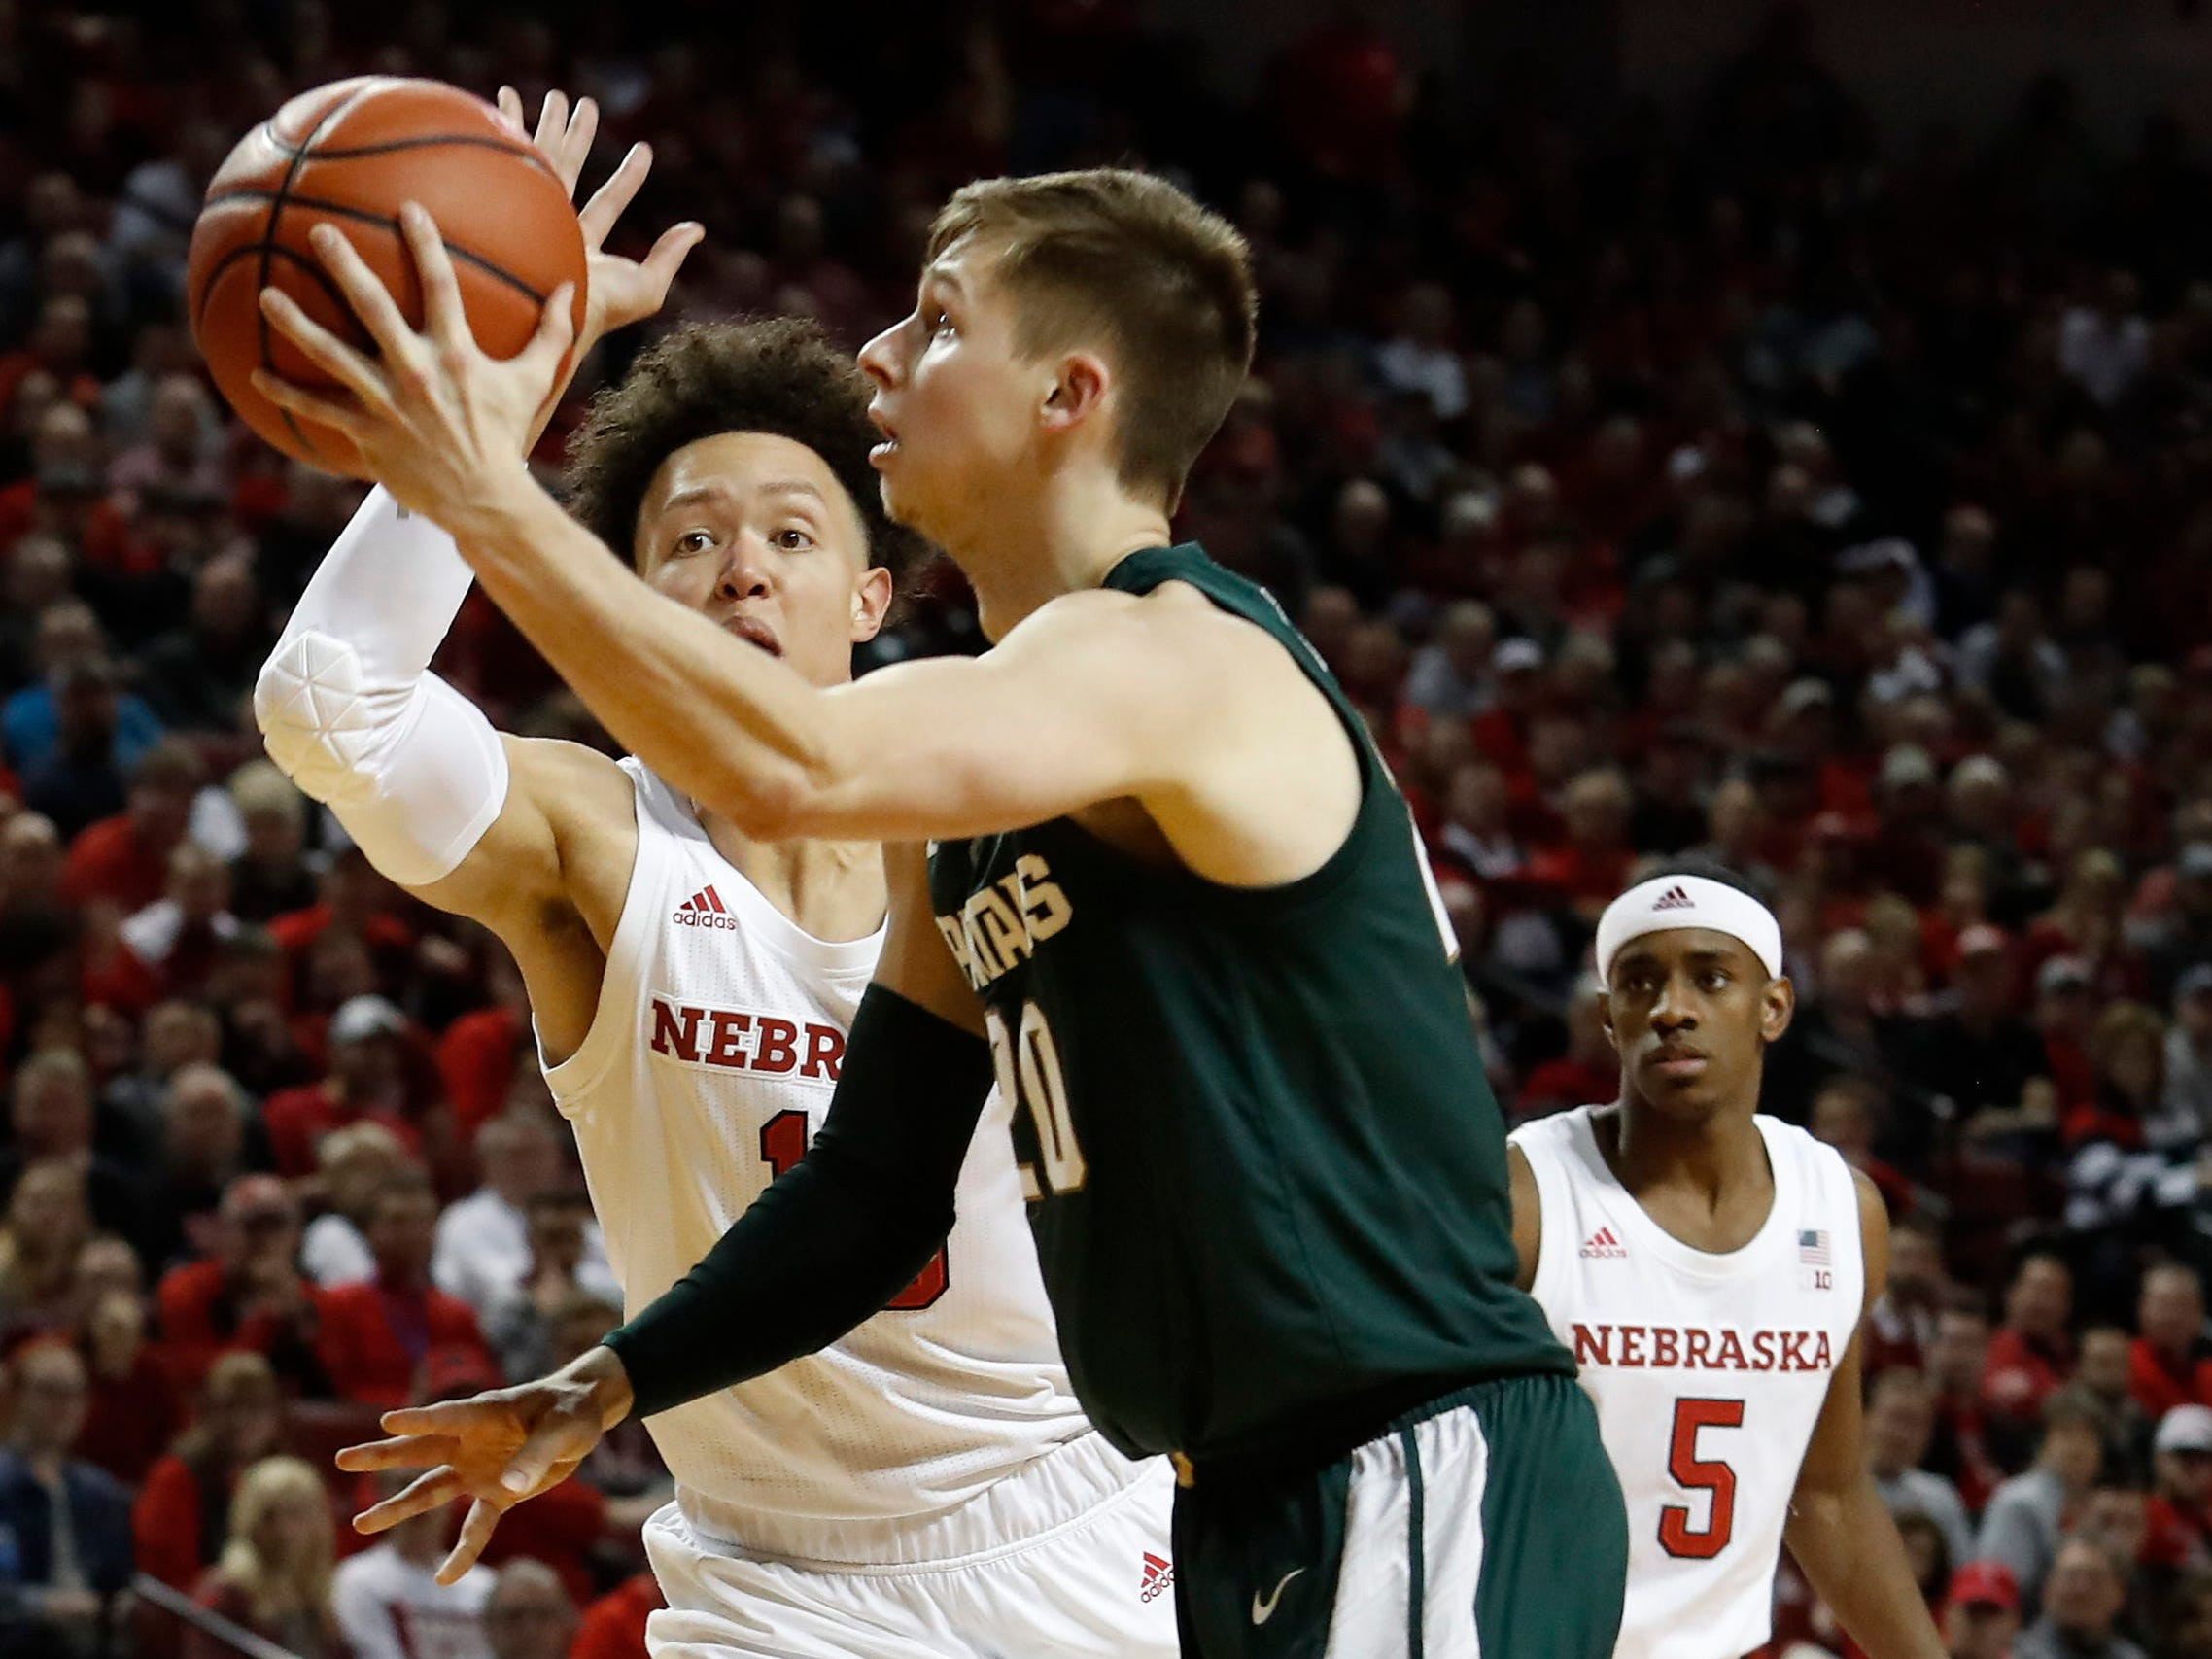 Michigan State Spartans guard Matt McQuaid (20) shoots the ball as Nebraska Cornhuskers forward Isaiah Roby (15) defends in the second half at Pinnacle Bank Arena. Michigan State won 70-64.